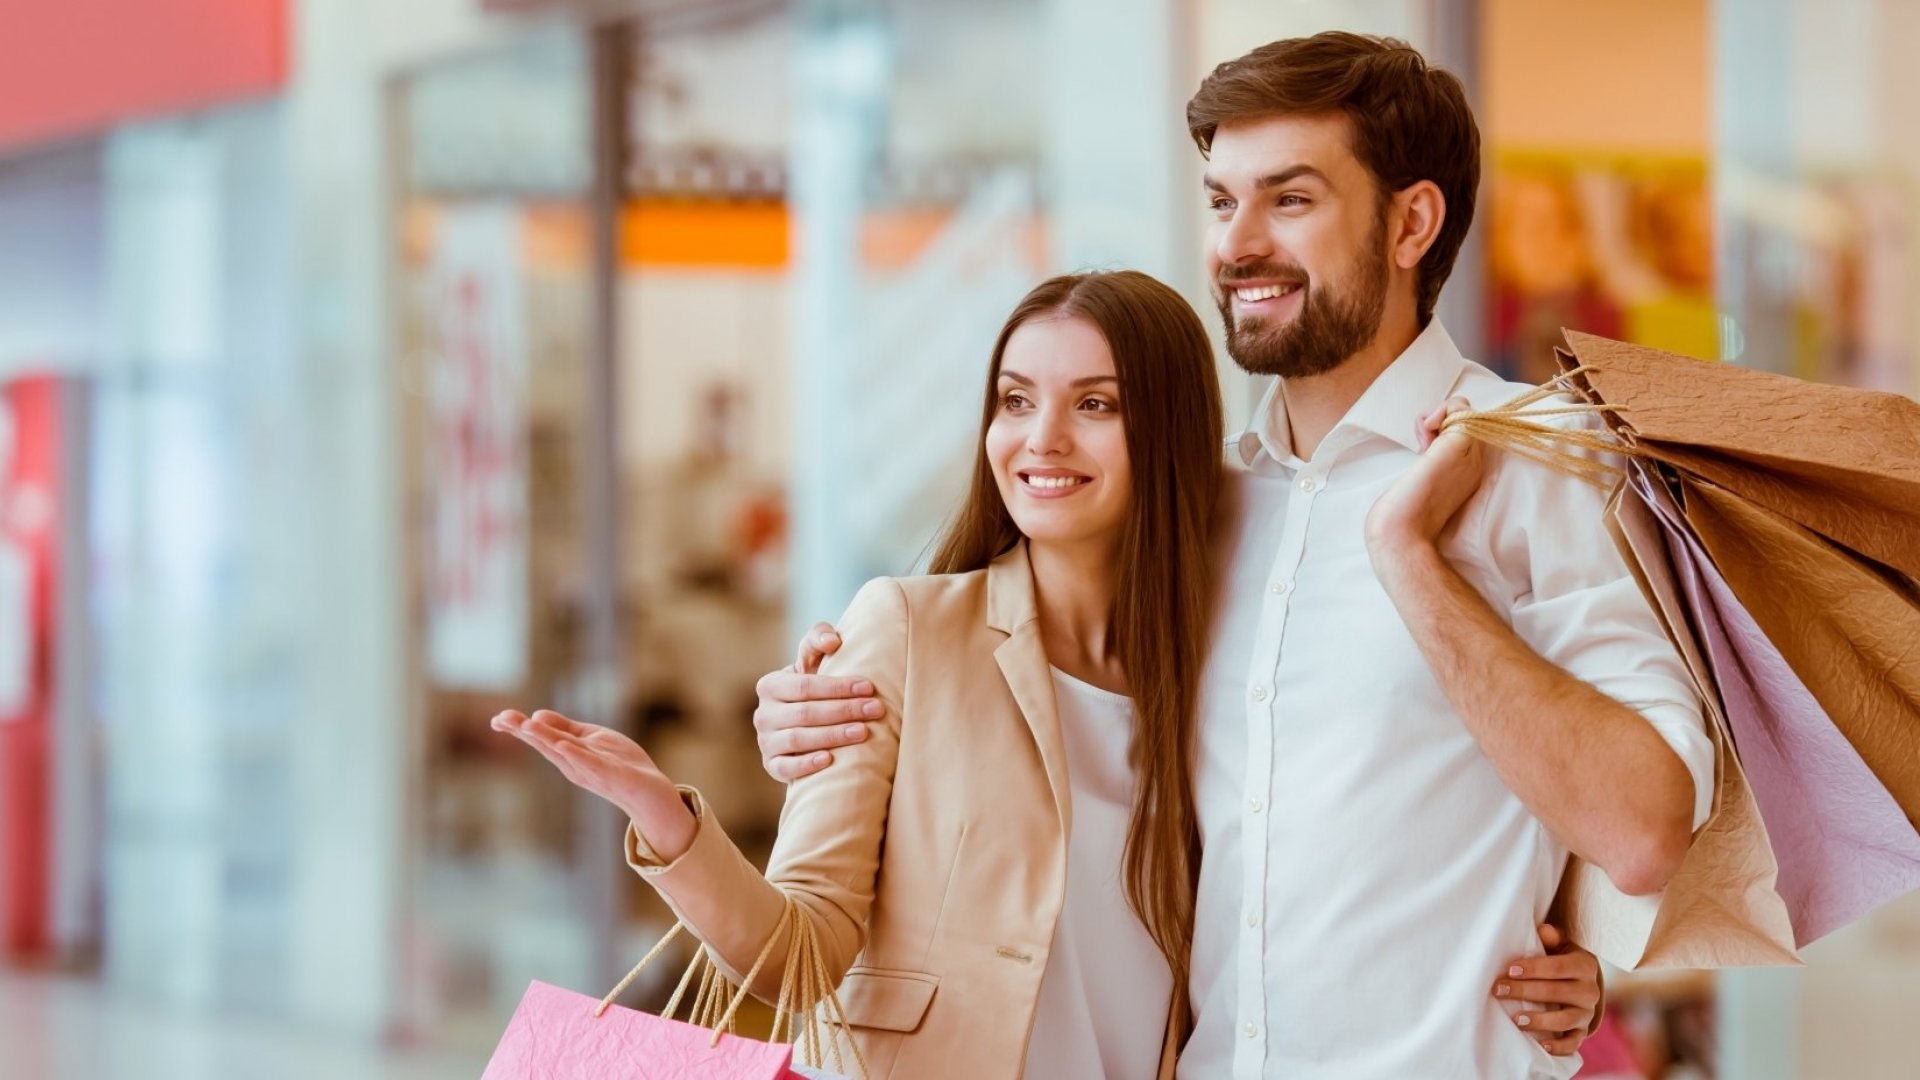 5 Things Holiday Shopping Can Teach You About Creating Compelling Messages